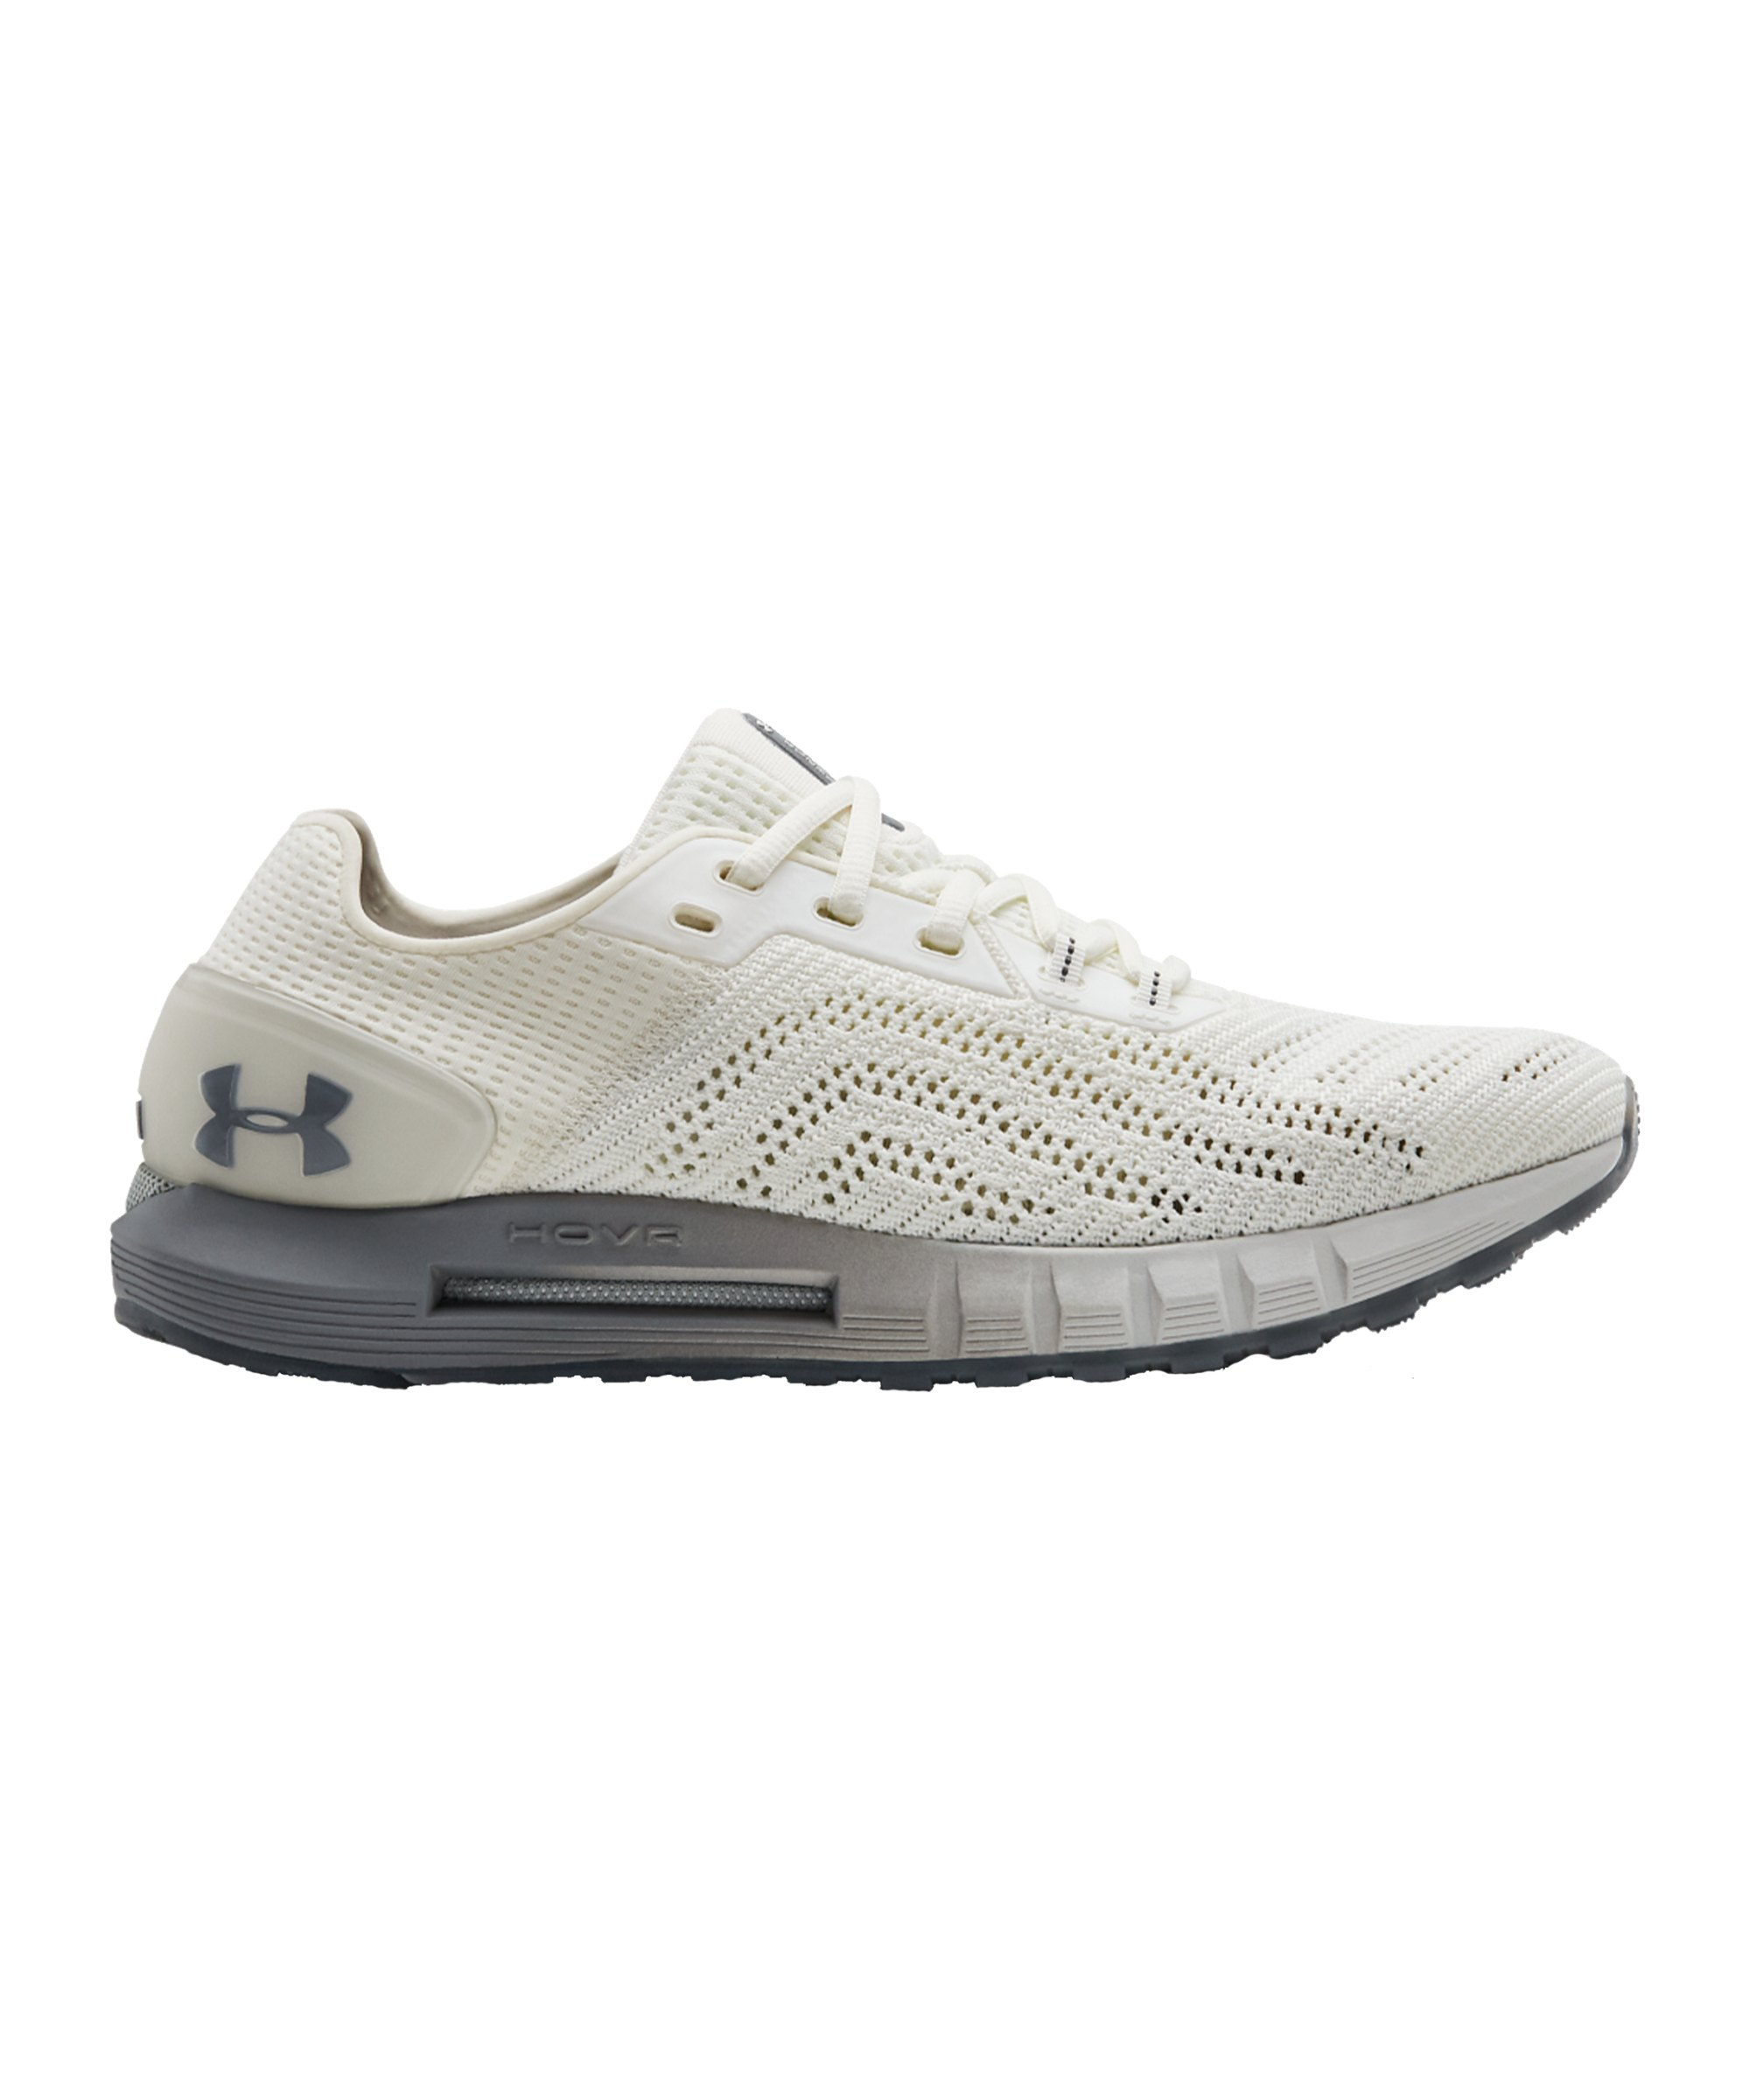 Under Armour Hovr Sonic 2 Running Weiss F101 - weiss